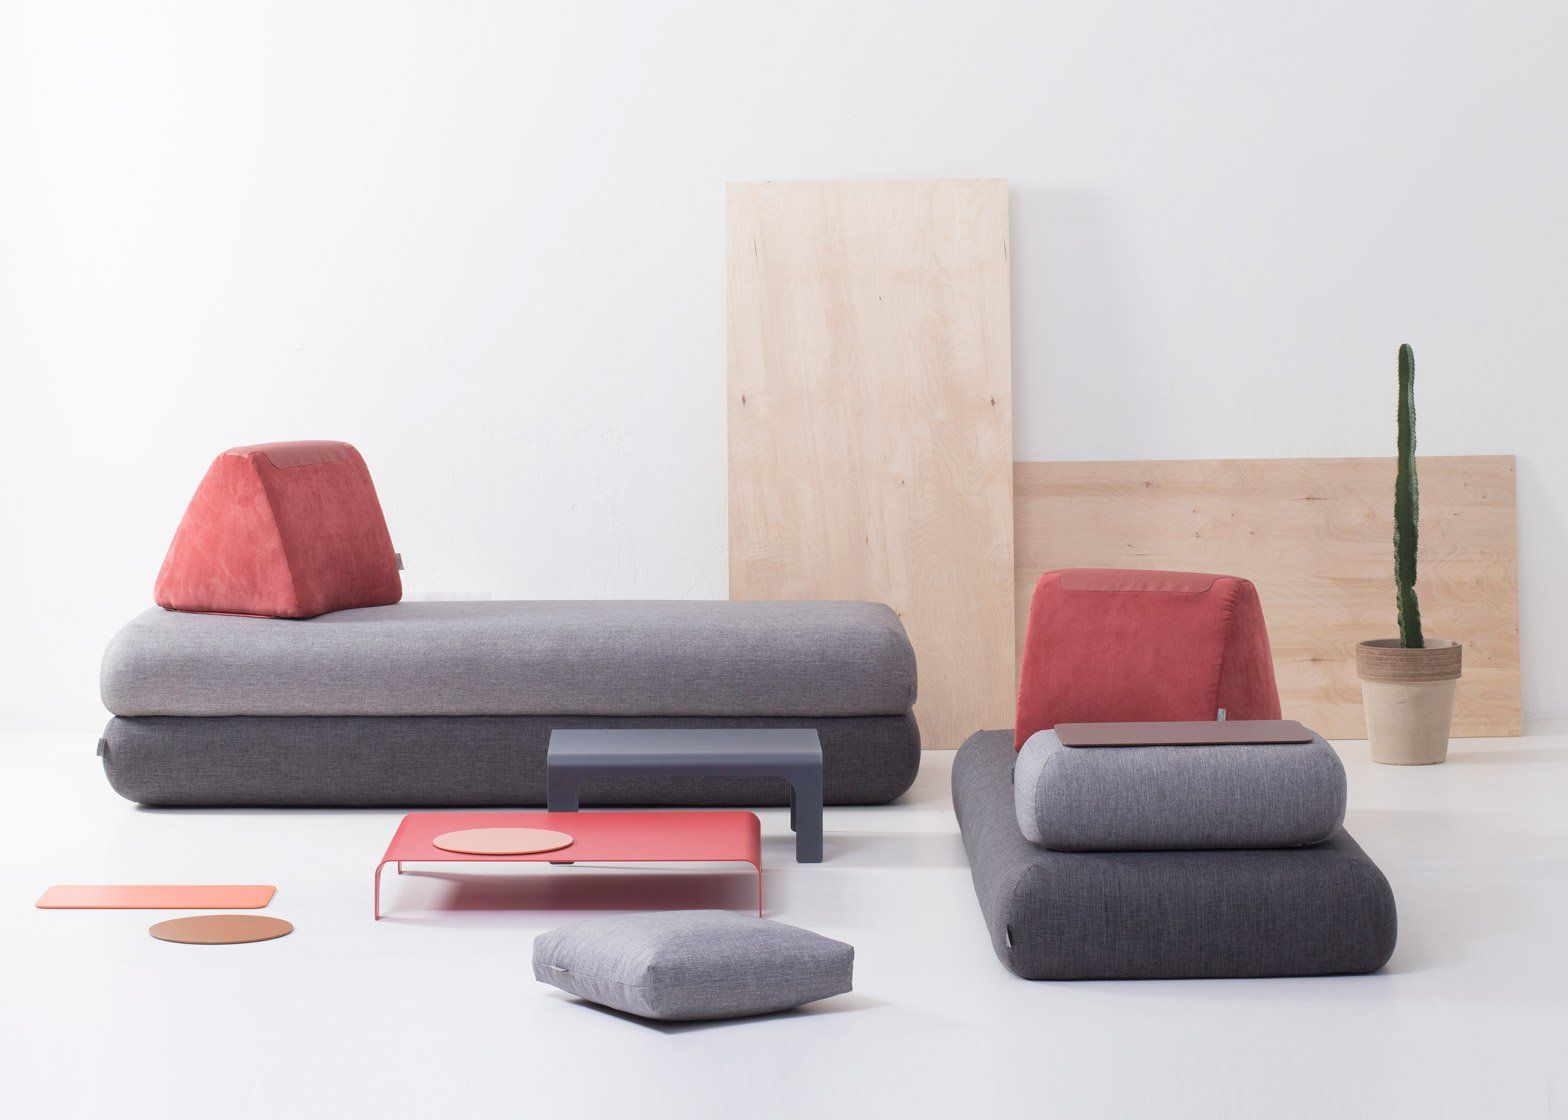 modular furniture for small spaces. Hungarian Furniture Brand Hannabi Has Designed A Sofa That Splits Into Four Different Parts And Is Aimed At Frequent Movers Or Those Living In Small Flats Modular For Spaces